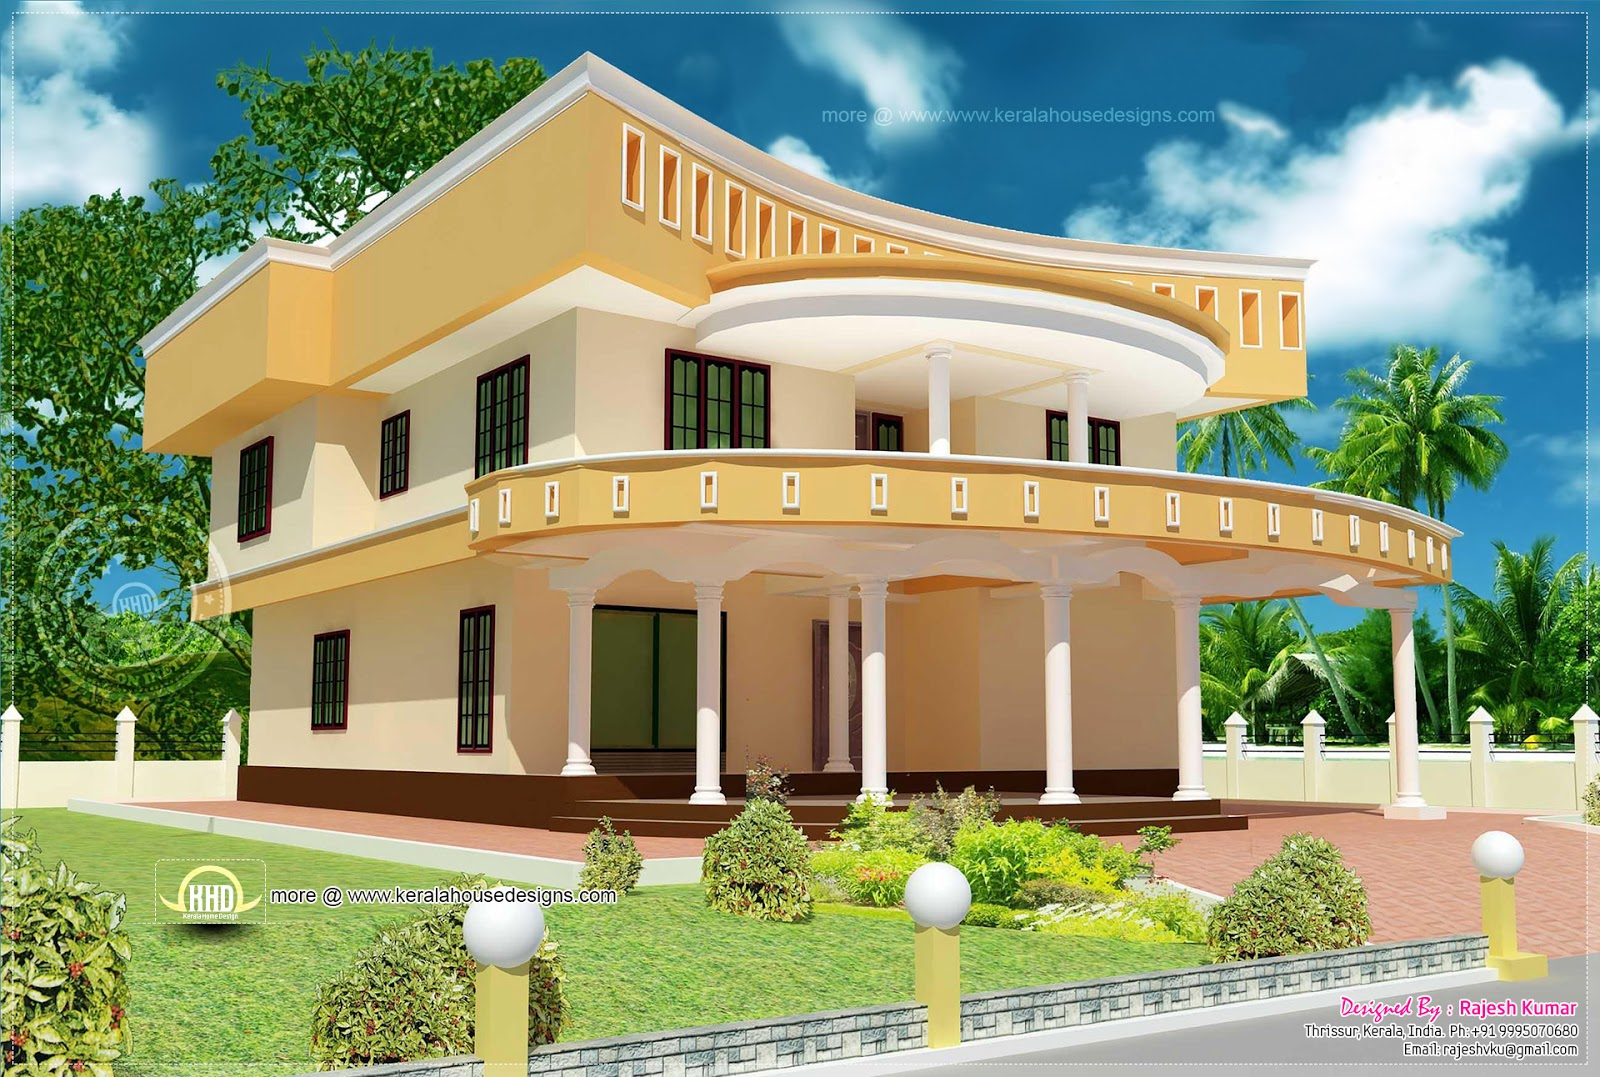 Unique home design in kerala kerala home design and for Interesting home designs